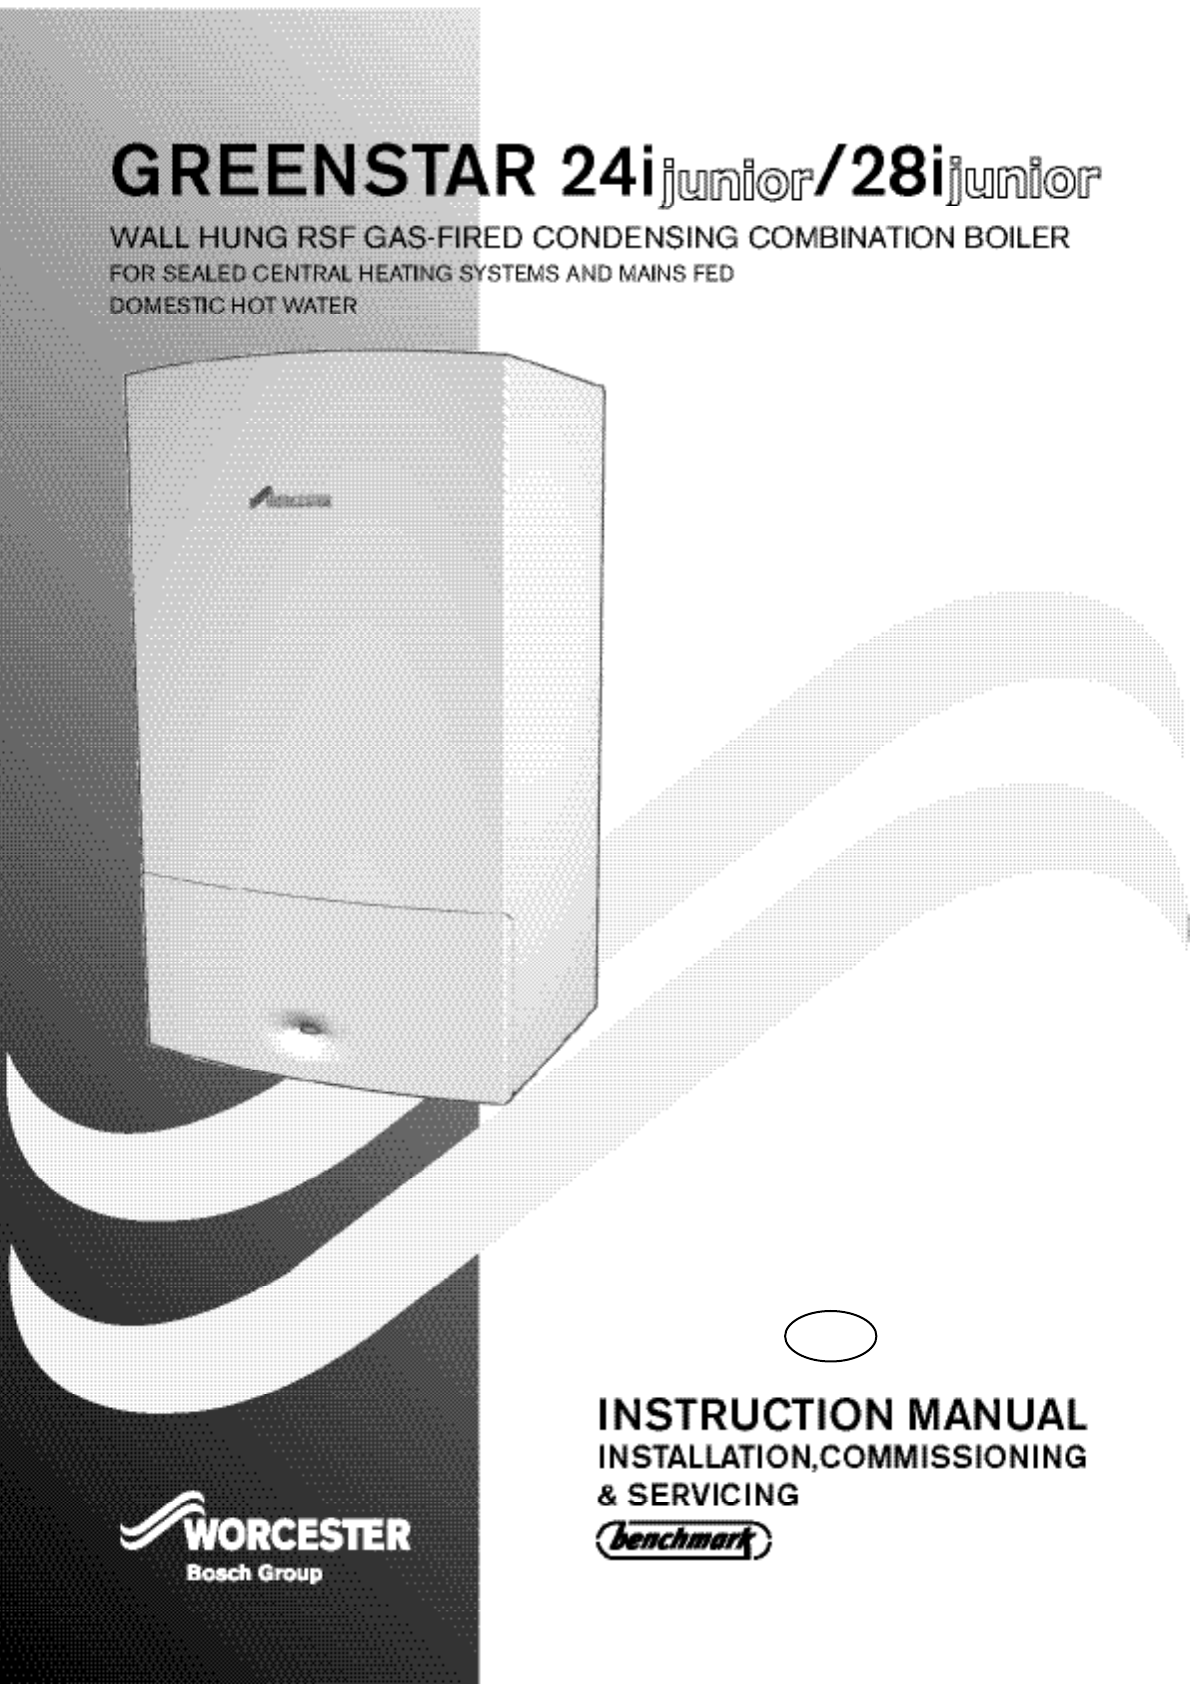 Bosch appliances boiler 28i junior user guide manualsonline cheapraybanclubmaster Images